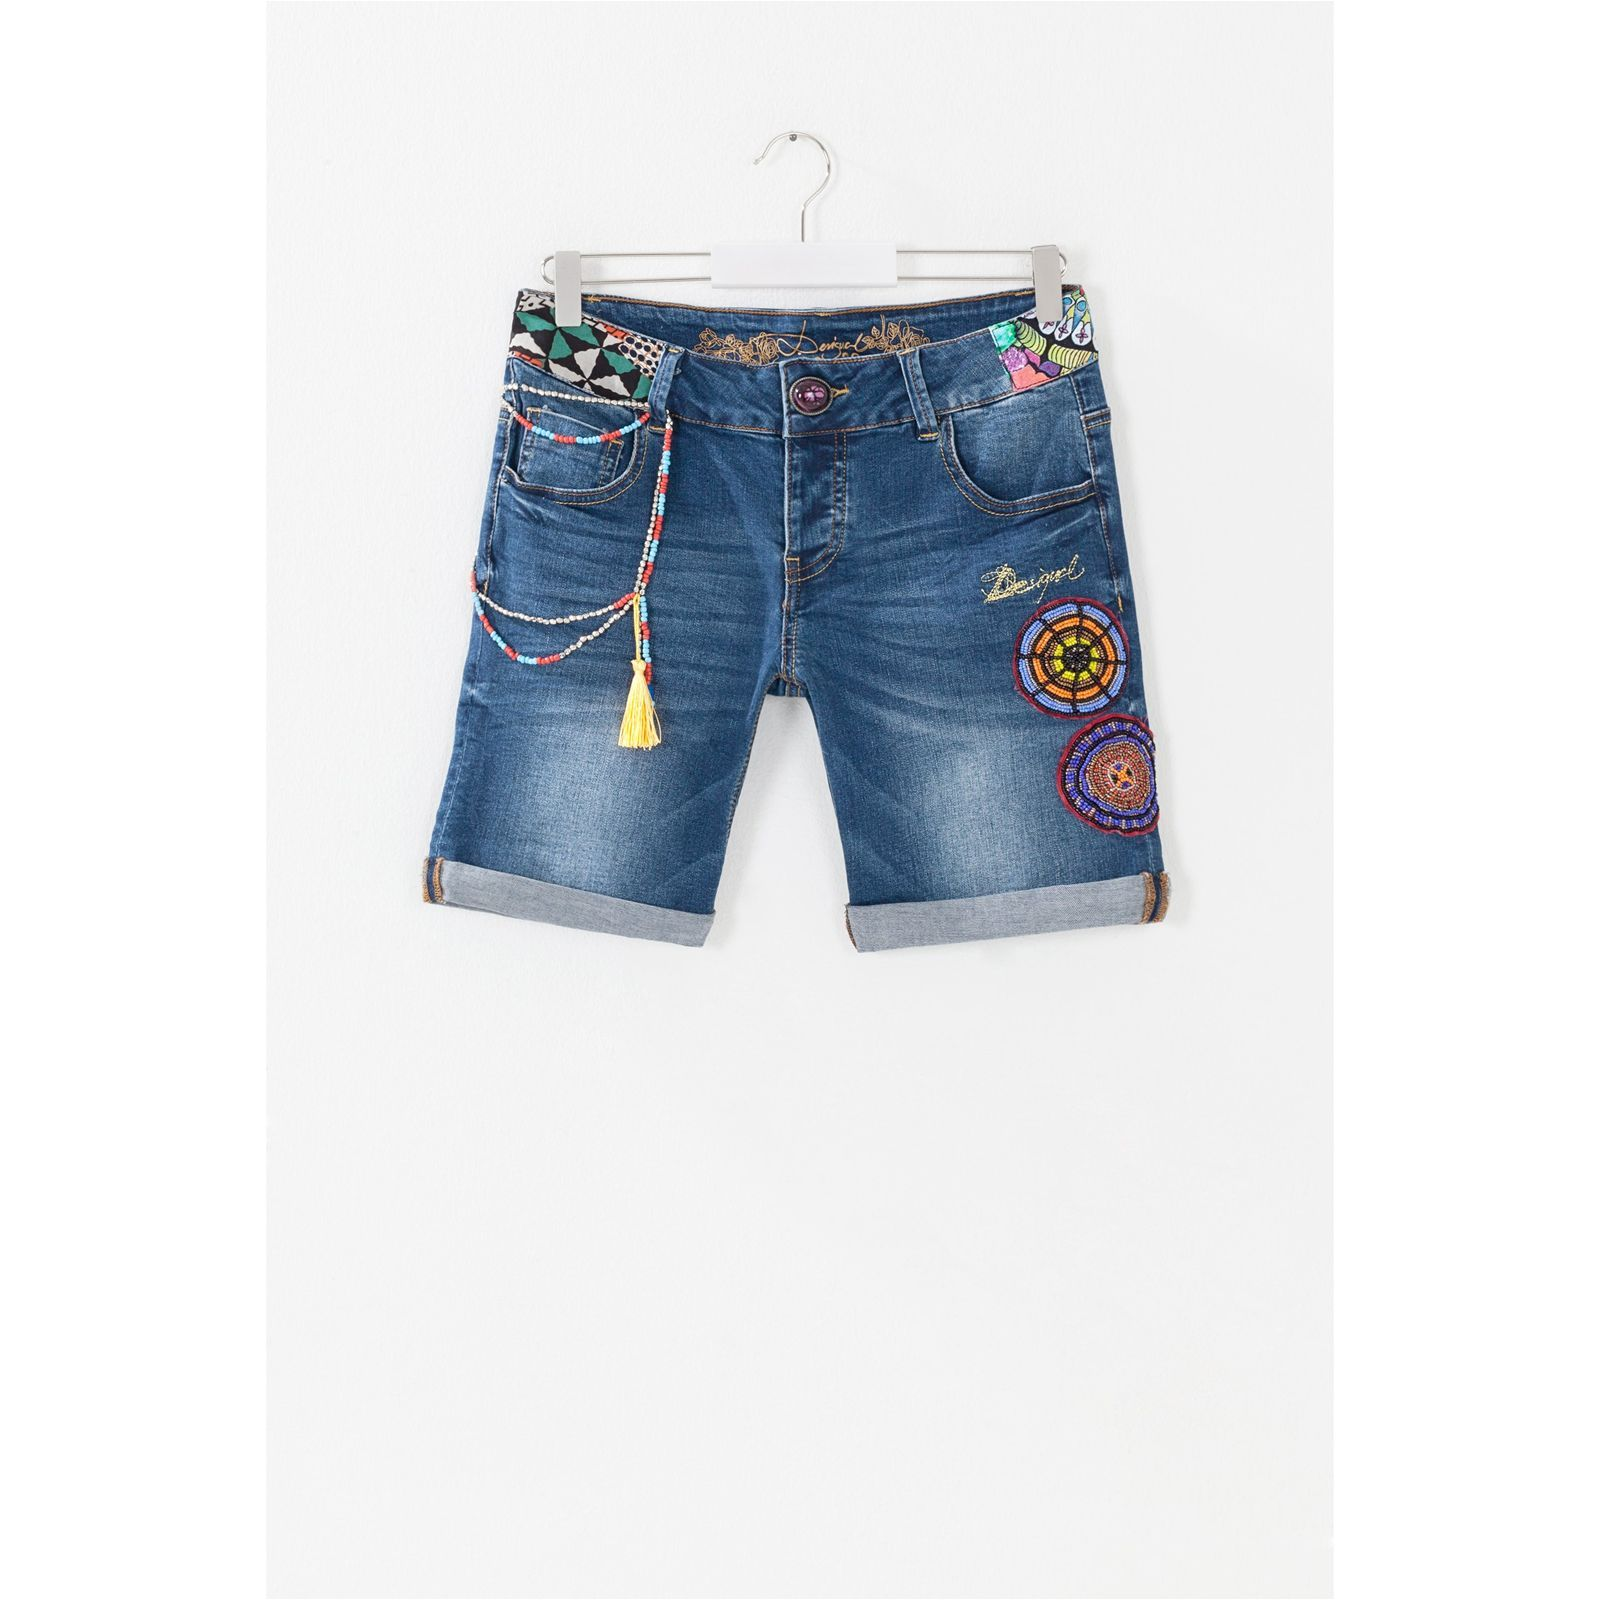 discount shop another chance buy online bermuda femme desigual,Desigual Short en jean Centauri femme ...